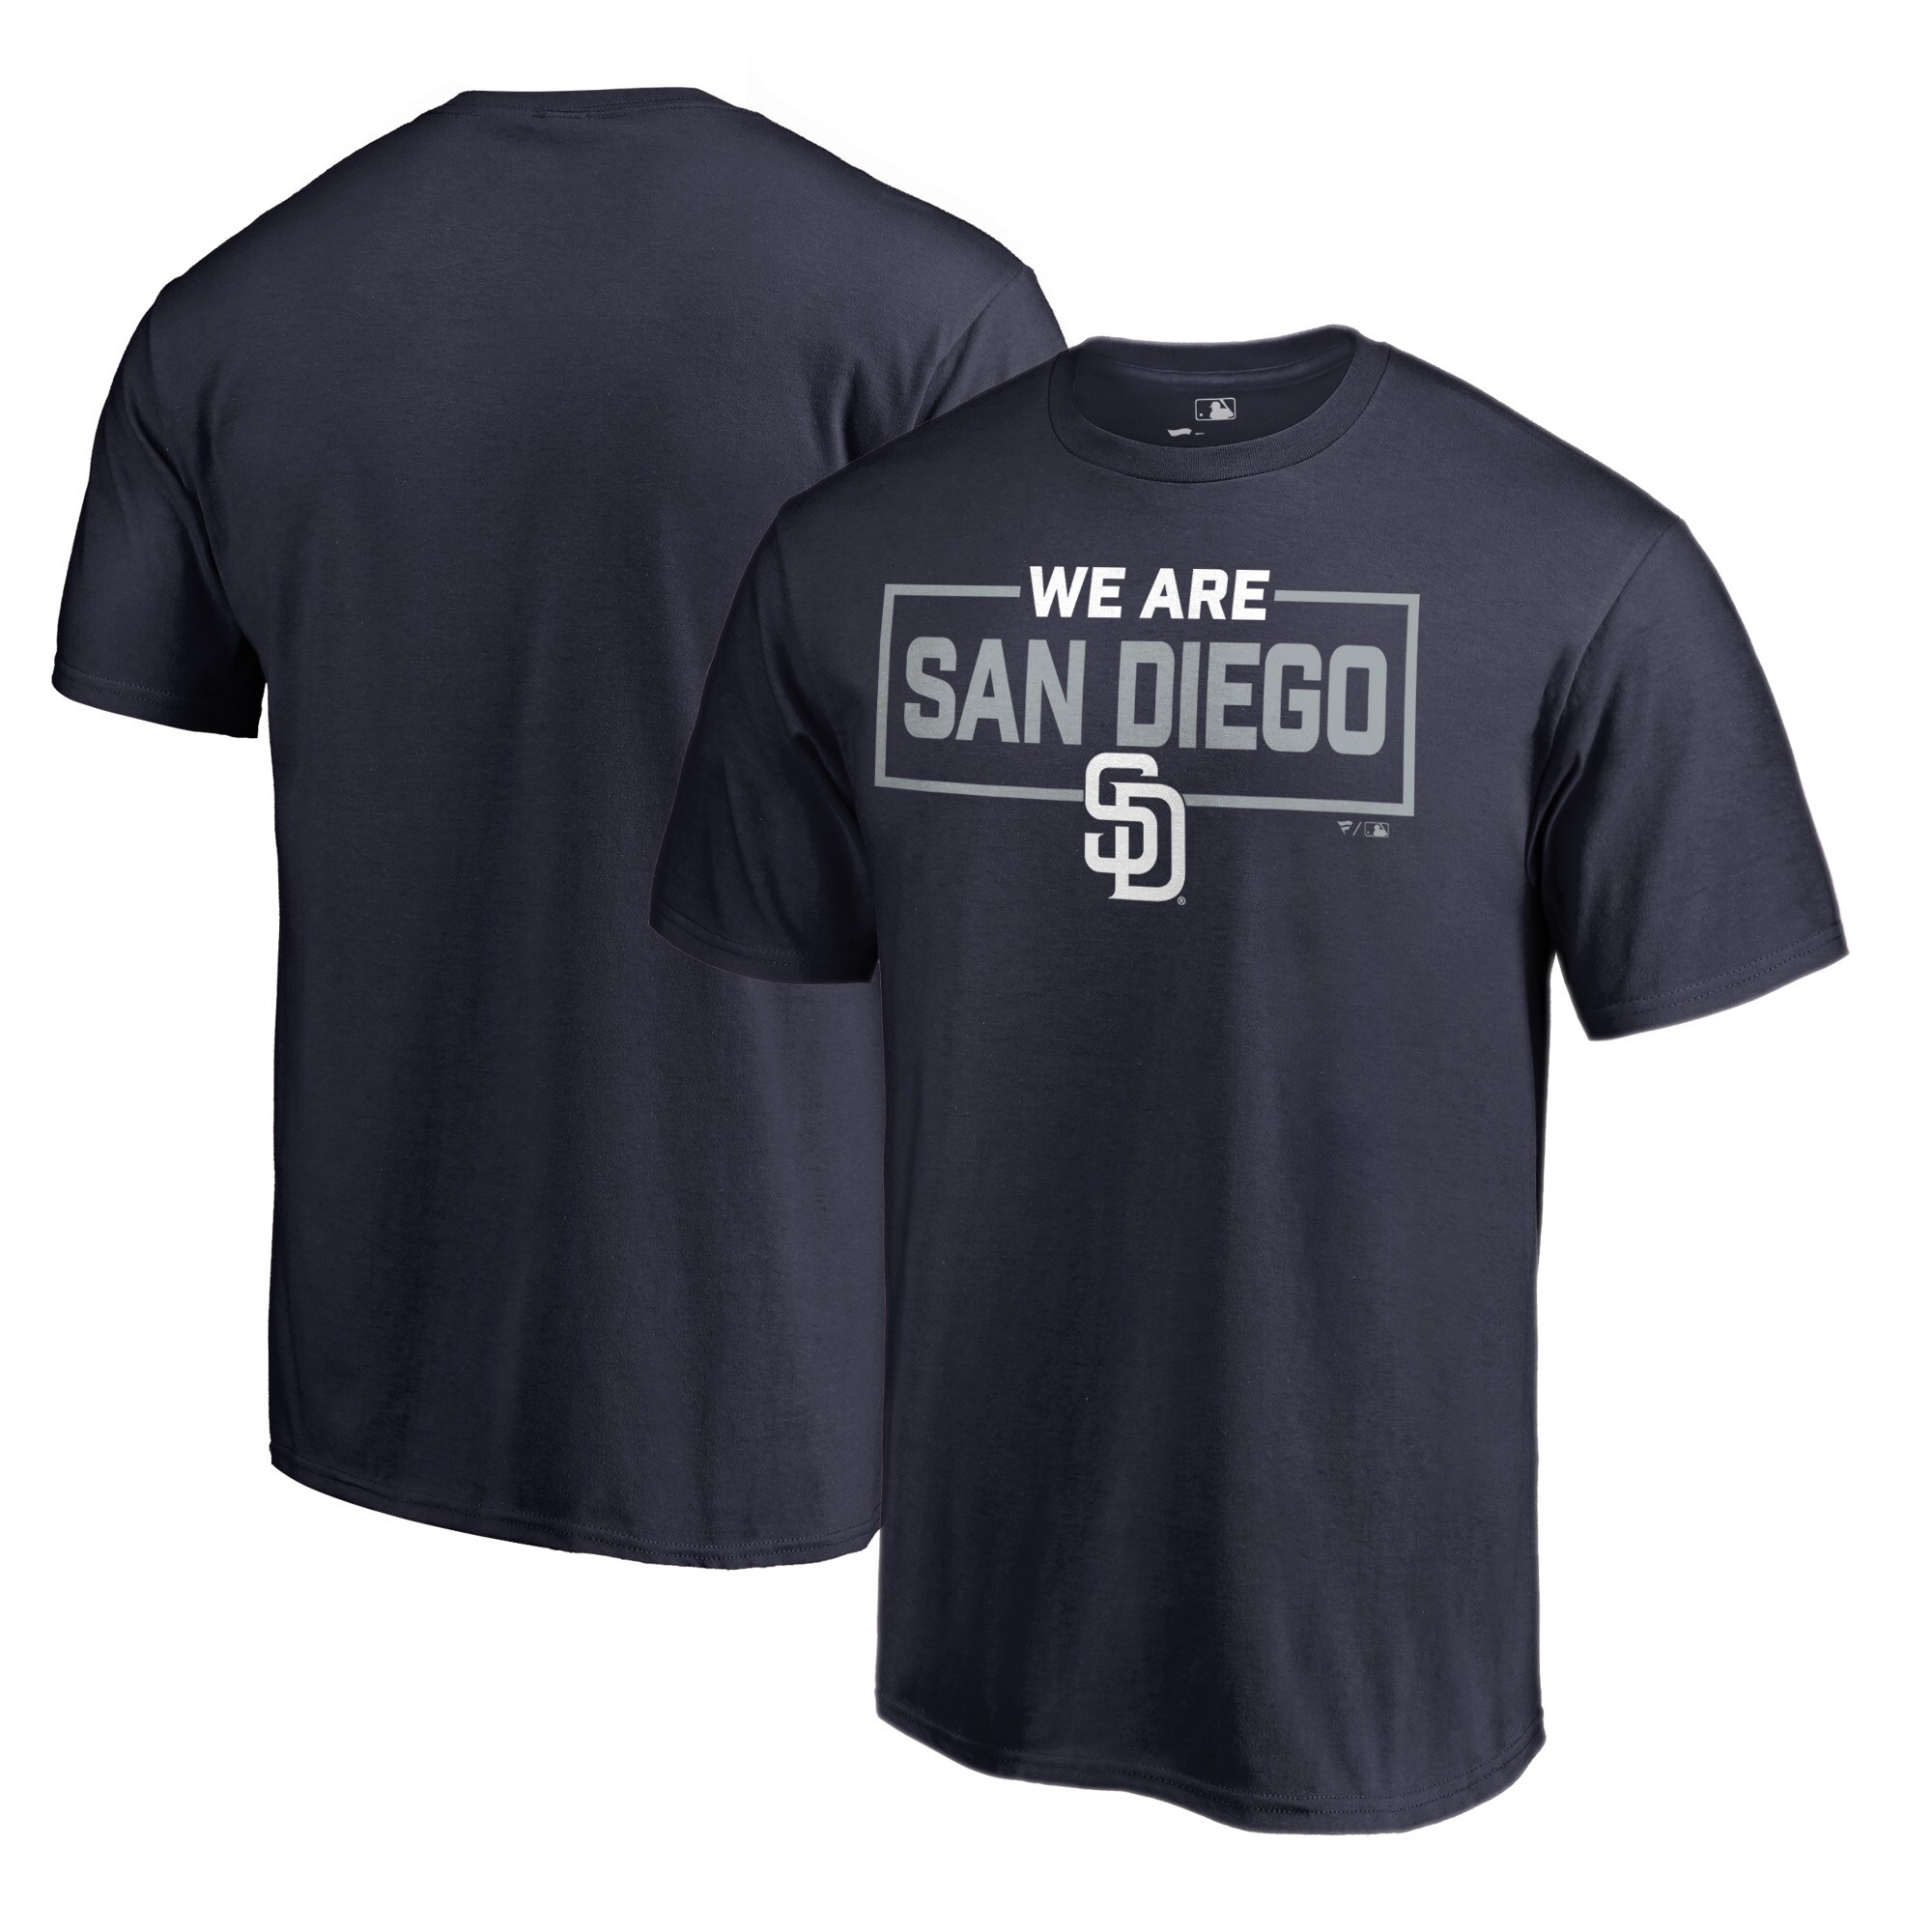 San Diego Padres Fanatics Branded Big & Tall We Are Icon T-Shirt - Navy